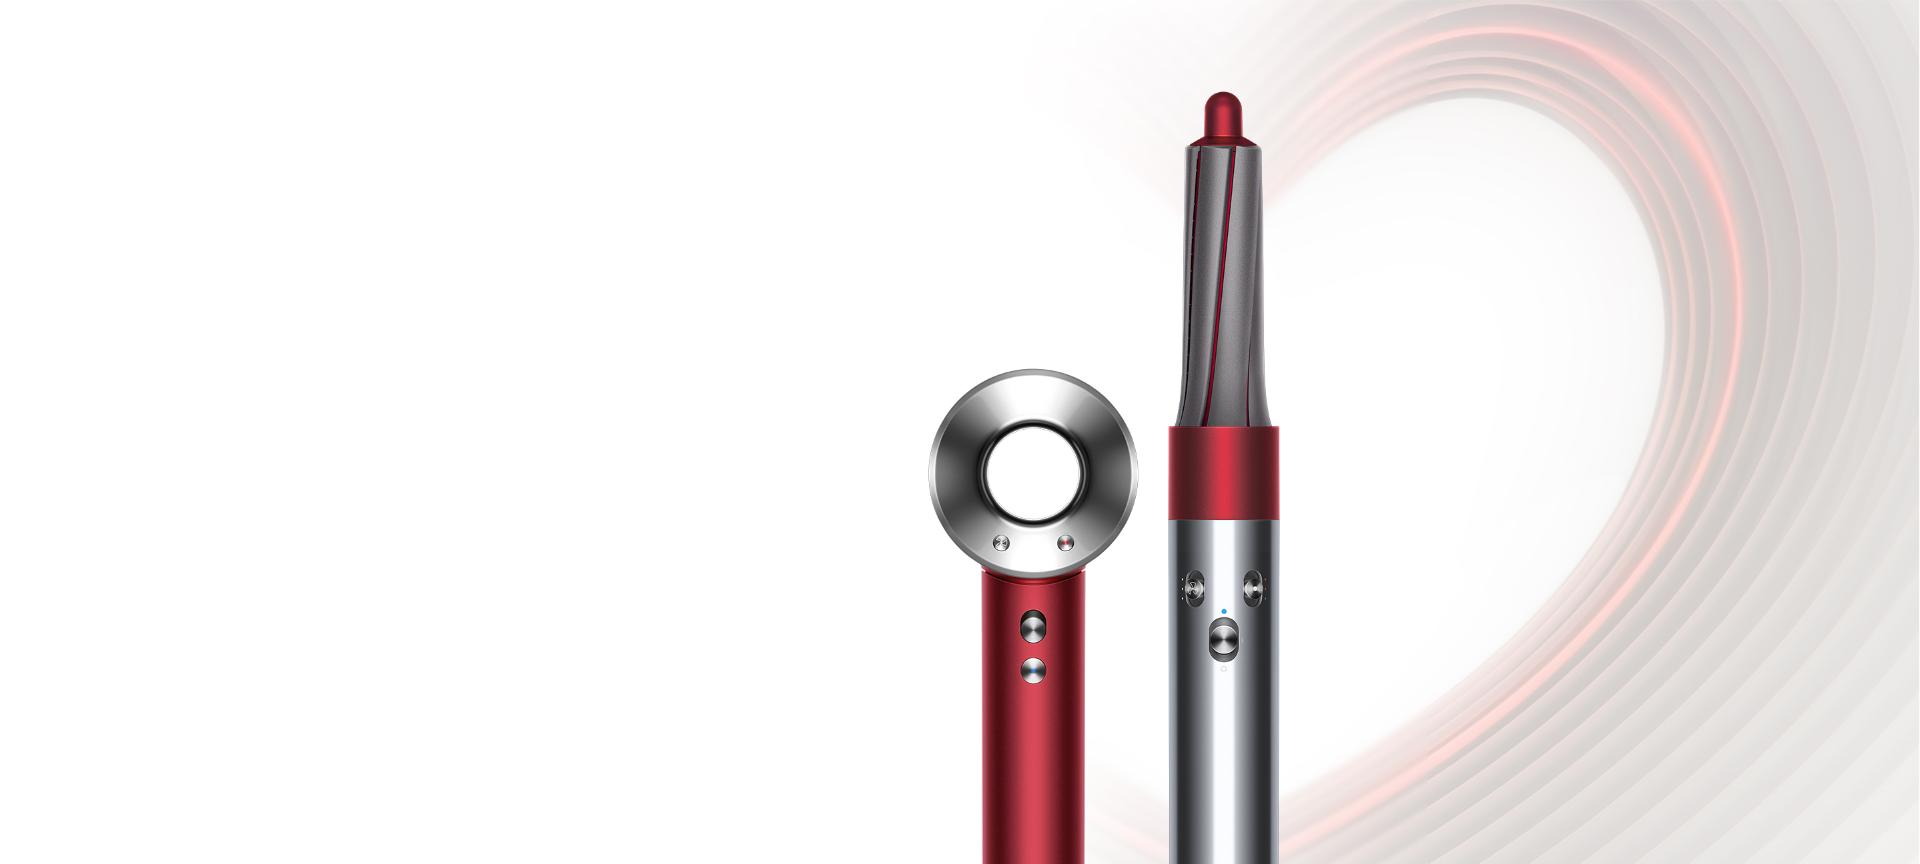 Red edition Dyson Supersonic hair dryer and Dyson Airwrap styler